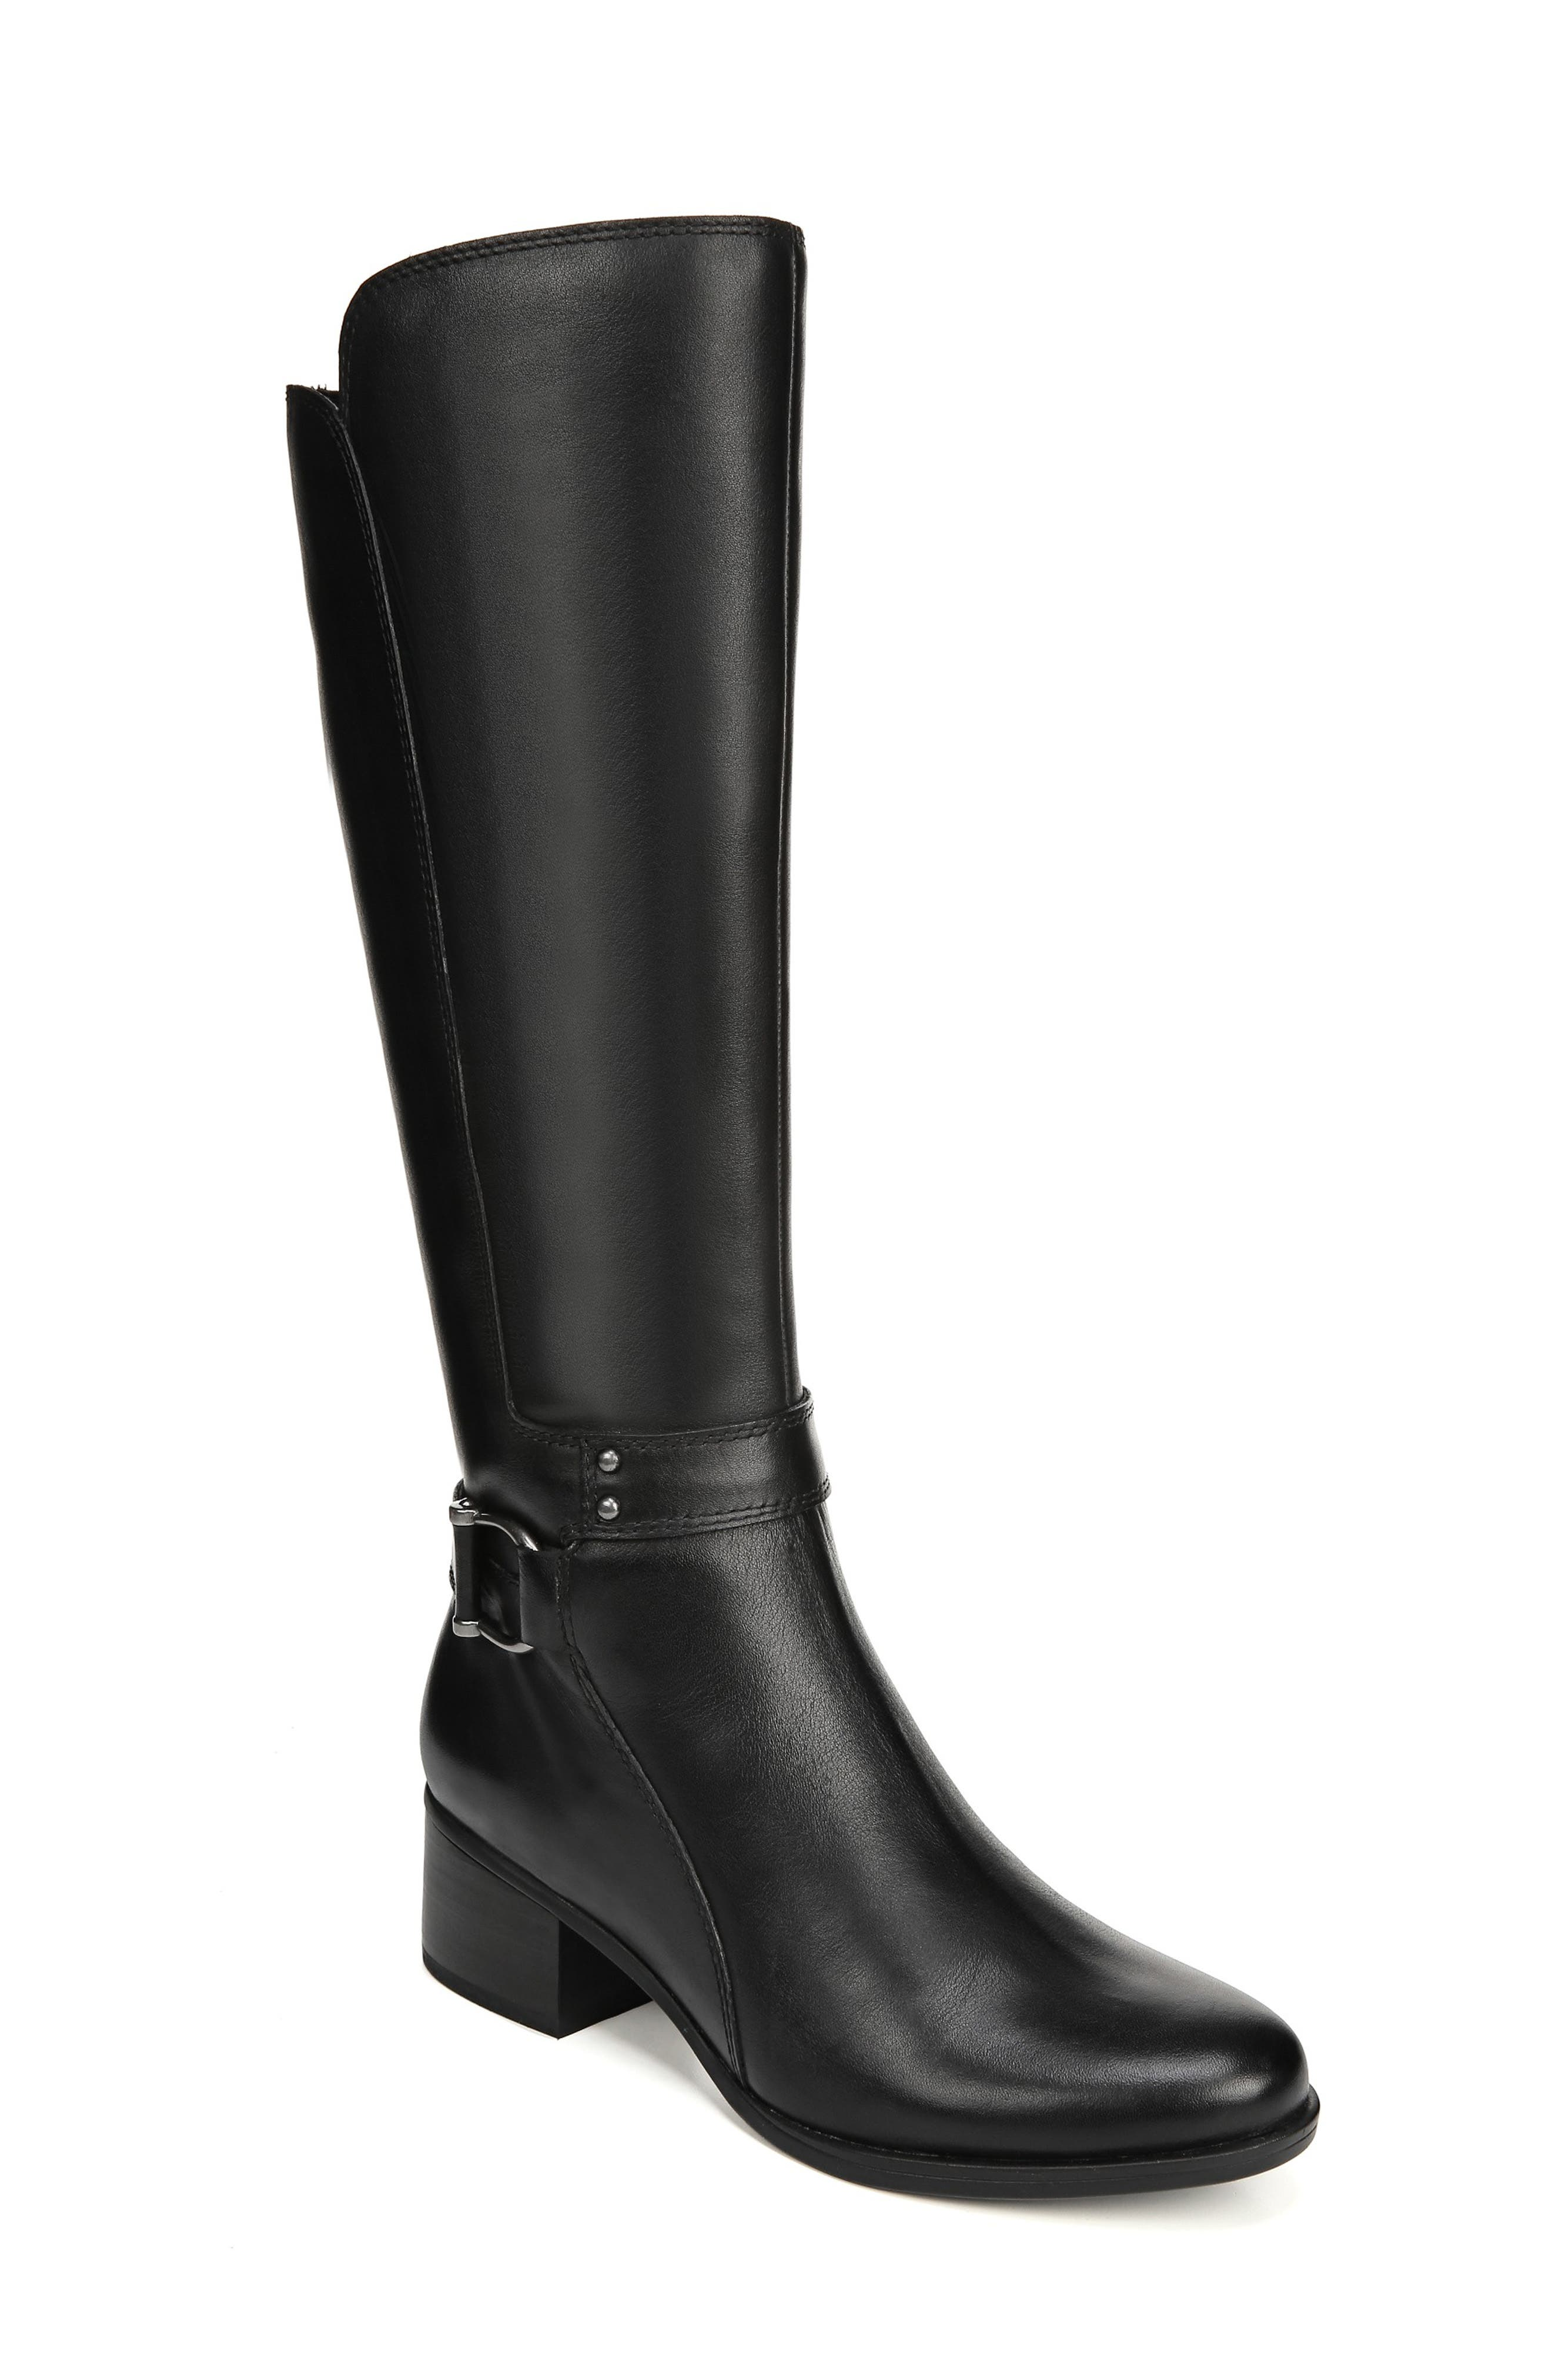 NATURALIZER Dane Knee High Riding Boot, Main, color, BLACK LEATHER